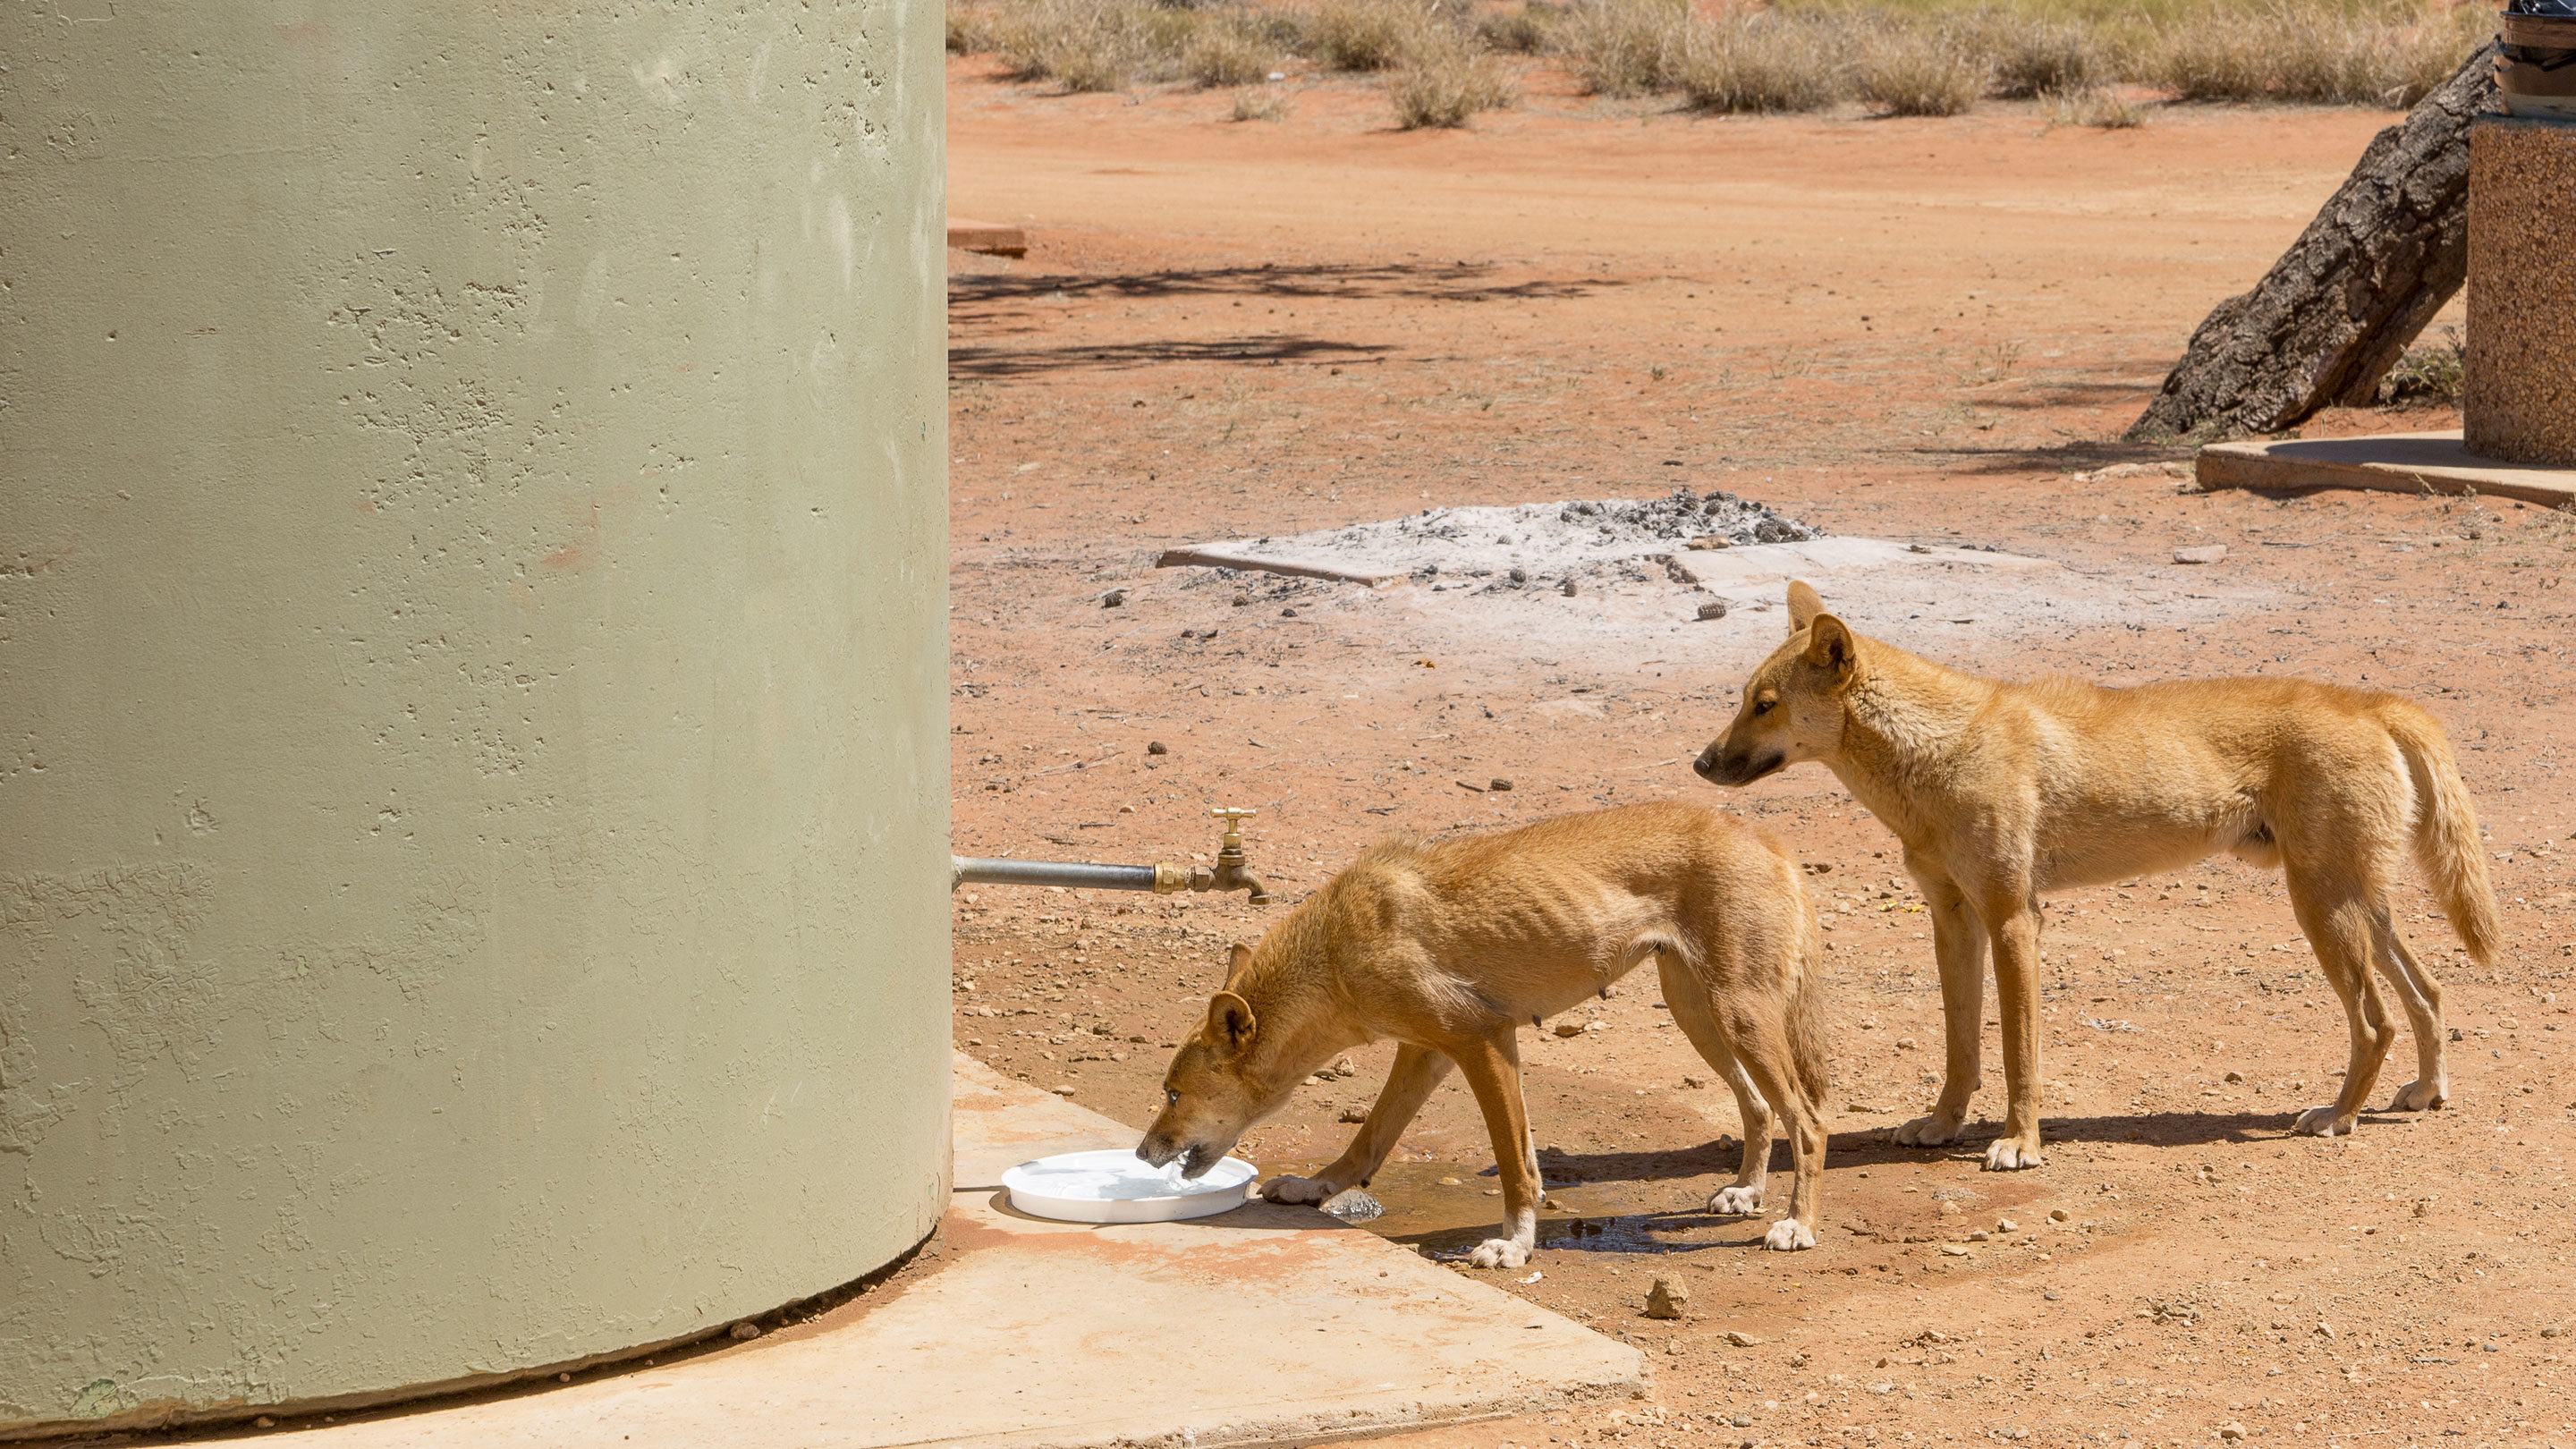 Photo of dingoes drinking from a water tank